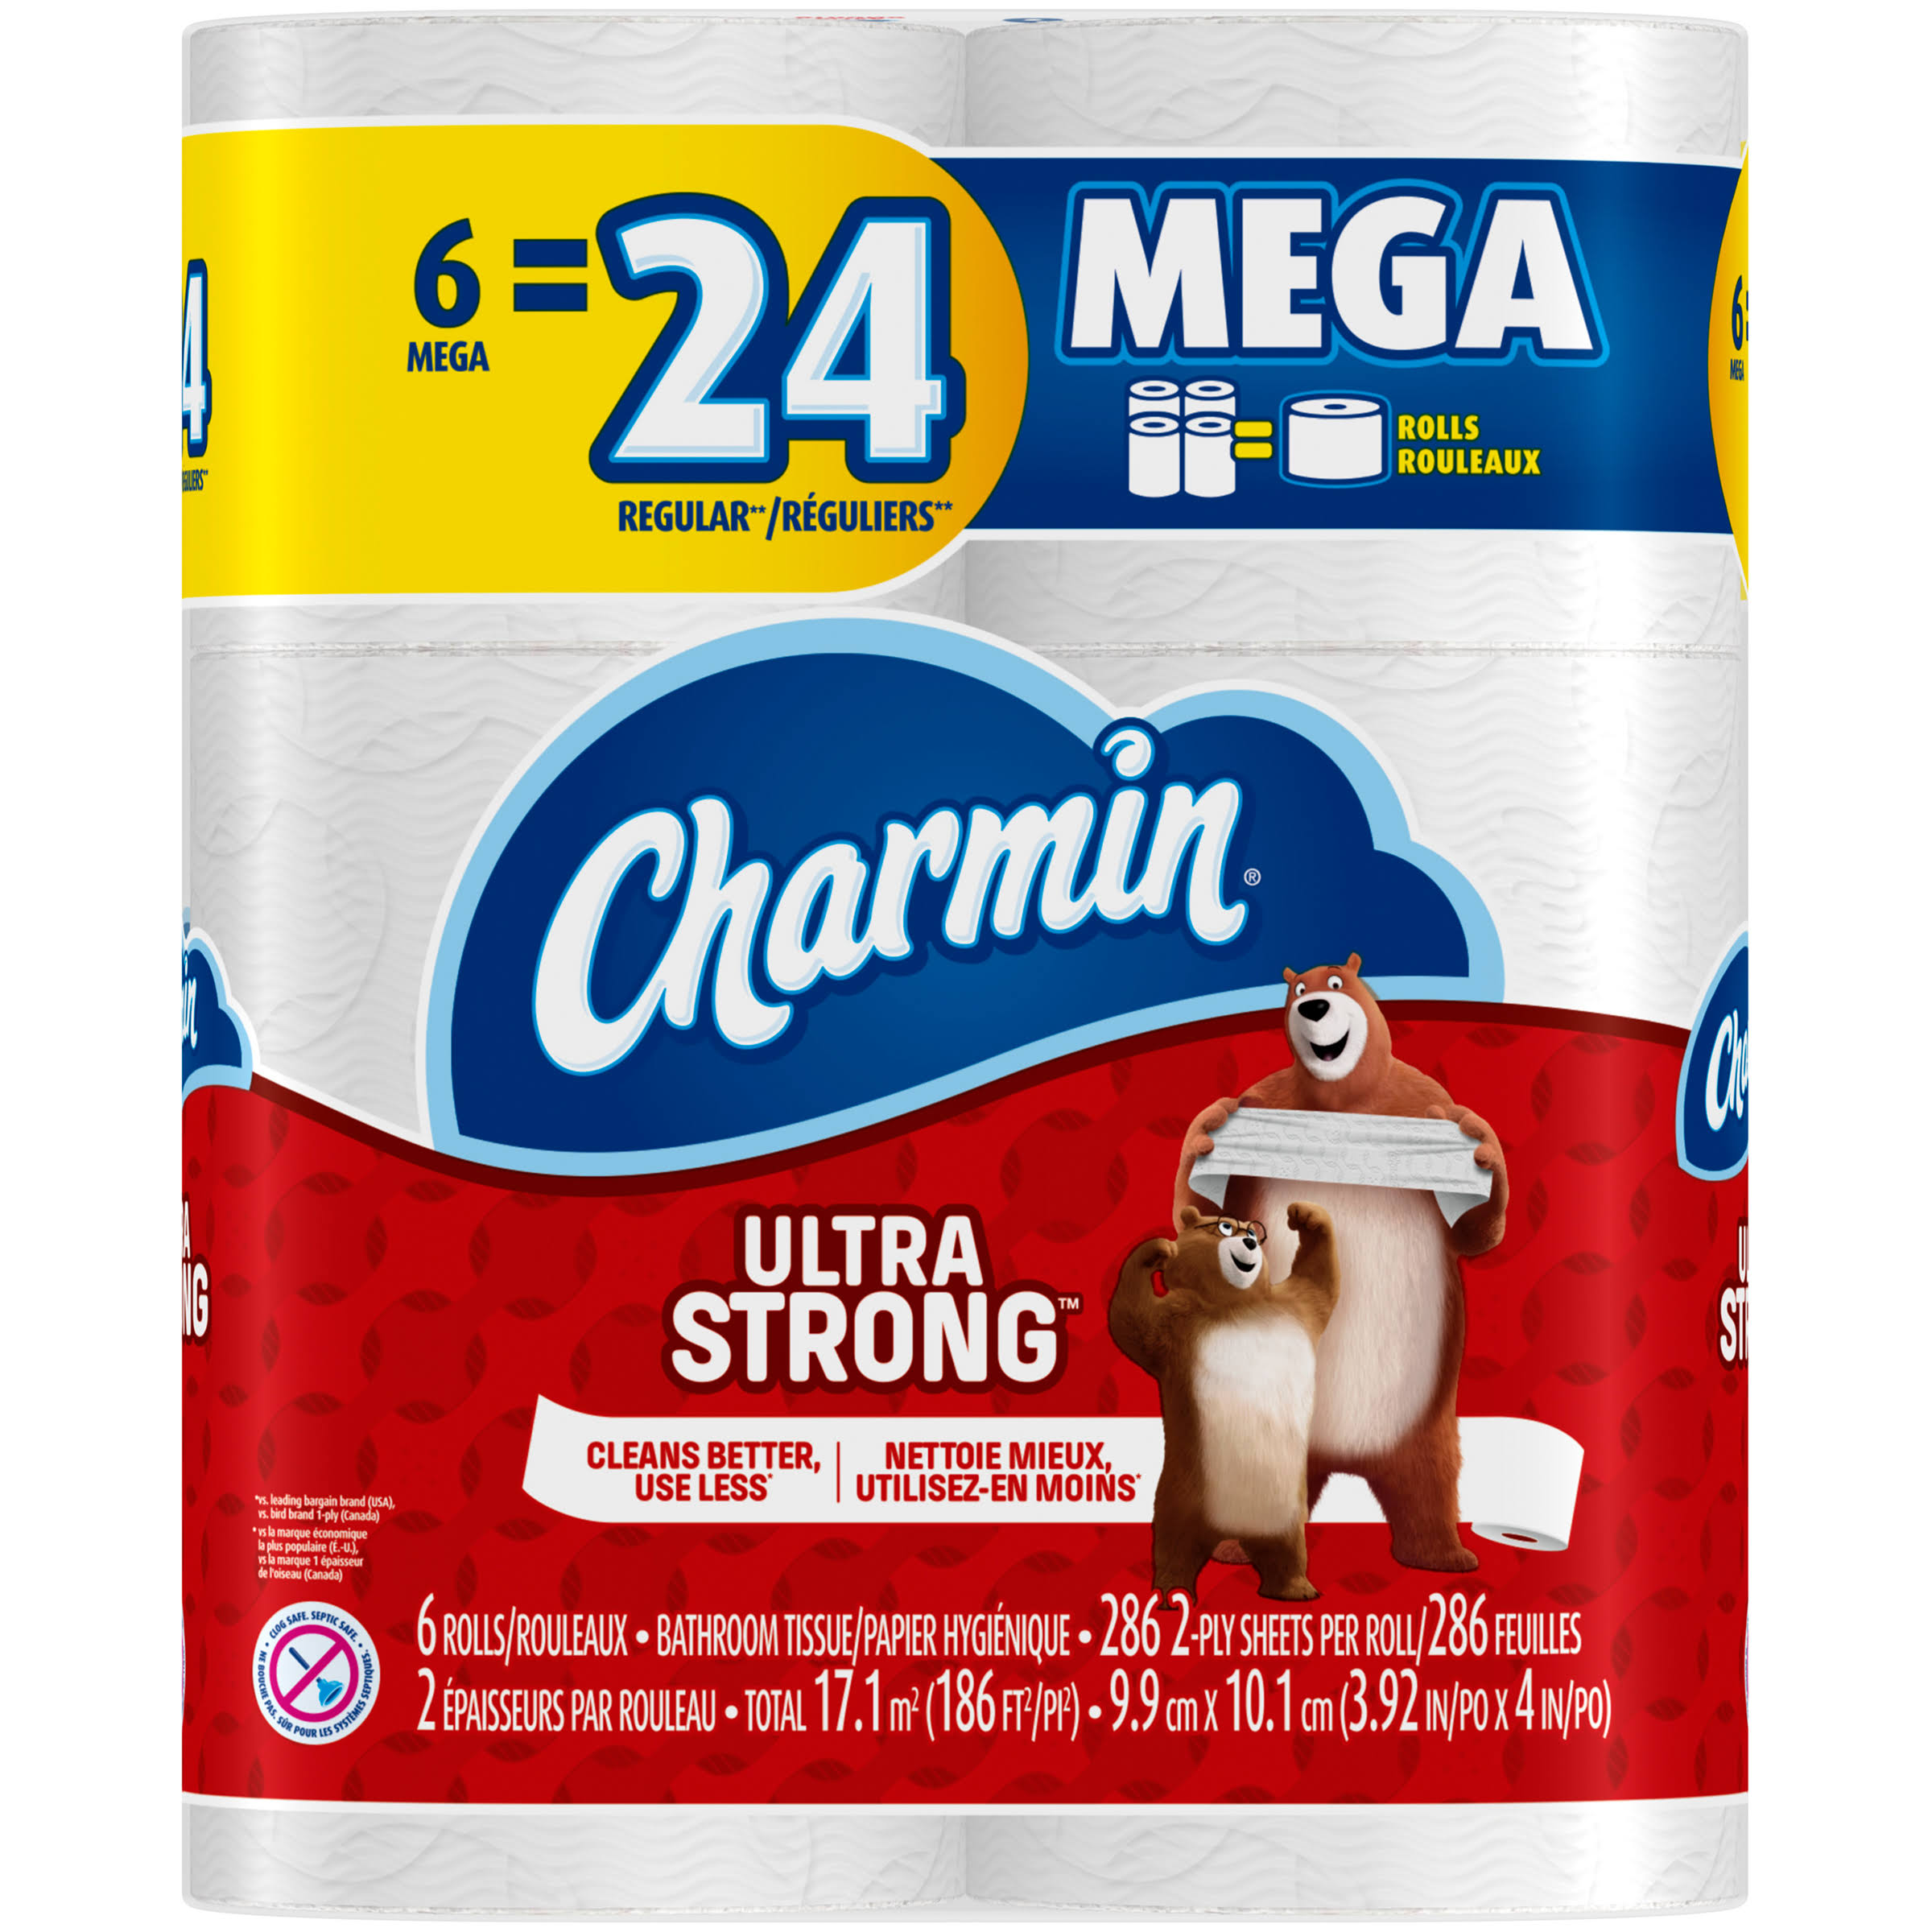 Charmin Bathroom Tissue, Mega Roll, Ultra Strong, 2-Ply - 6 rolls